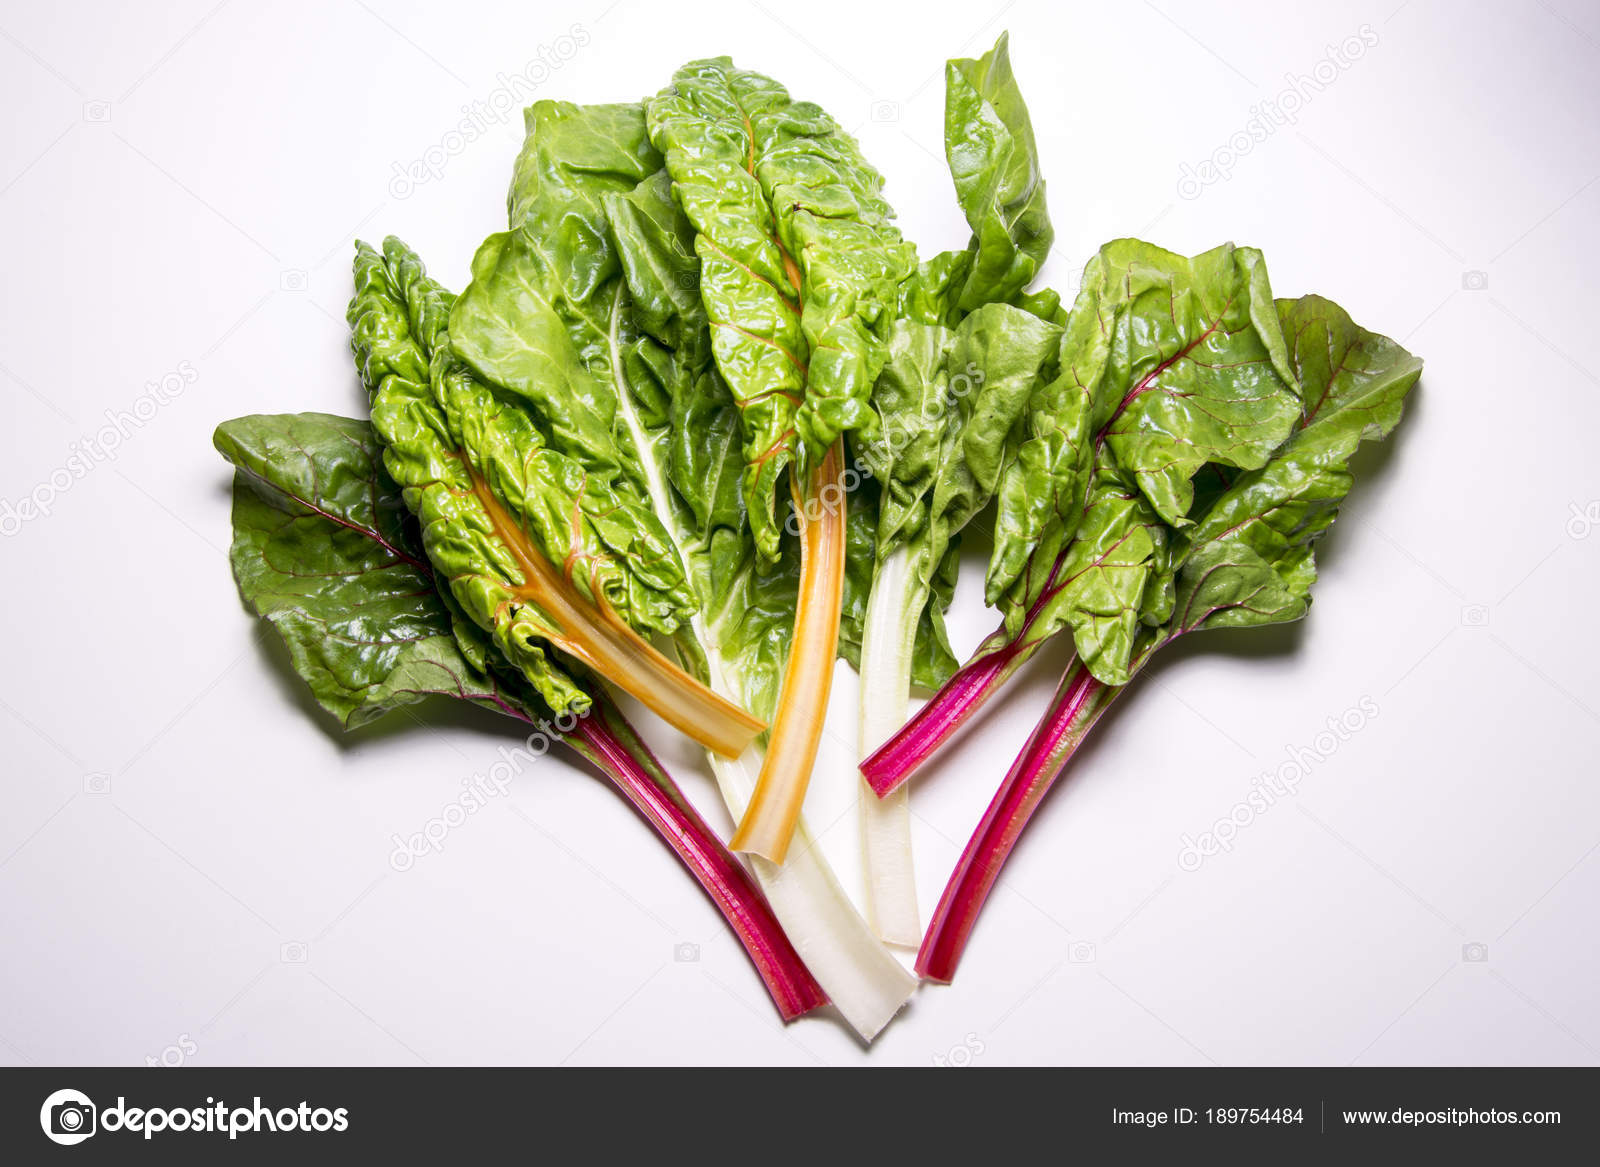 Rainbow Swiss Chard Mangold Beetroot Leaves Stock Photo C Andreionedrag81 189754484